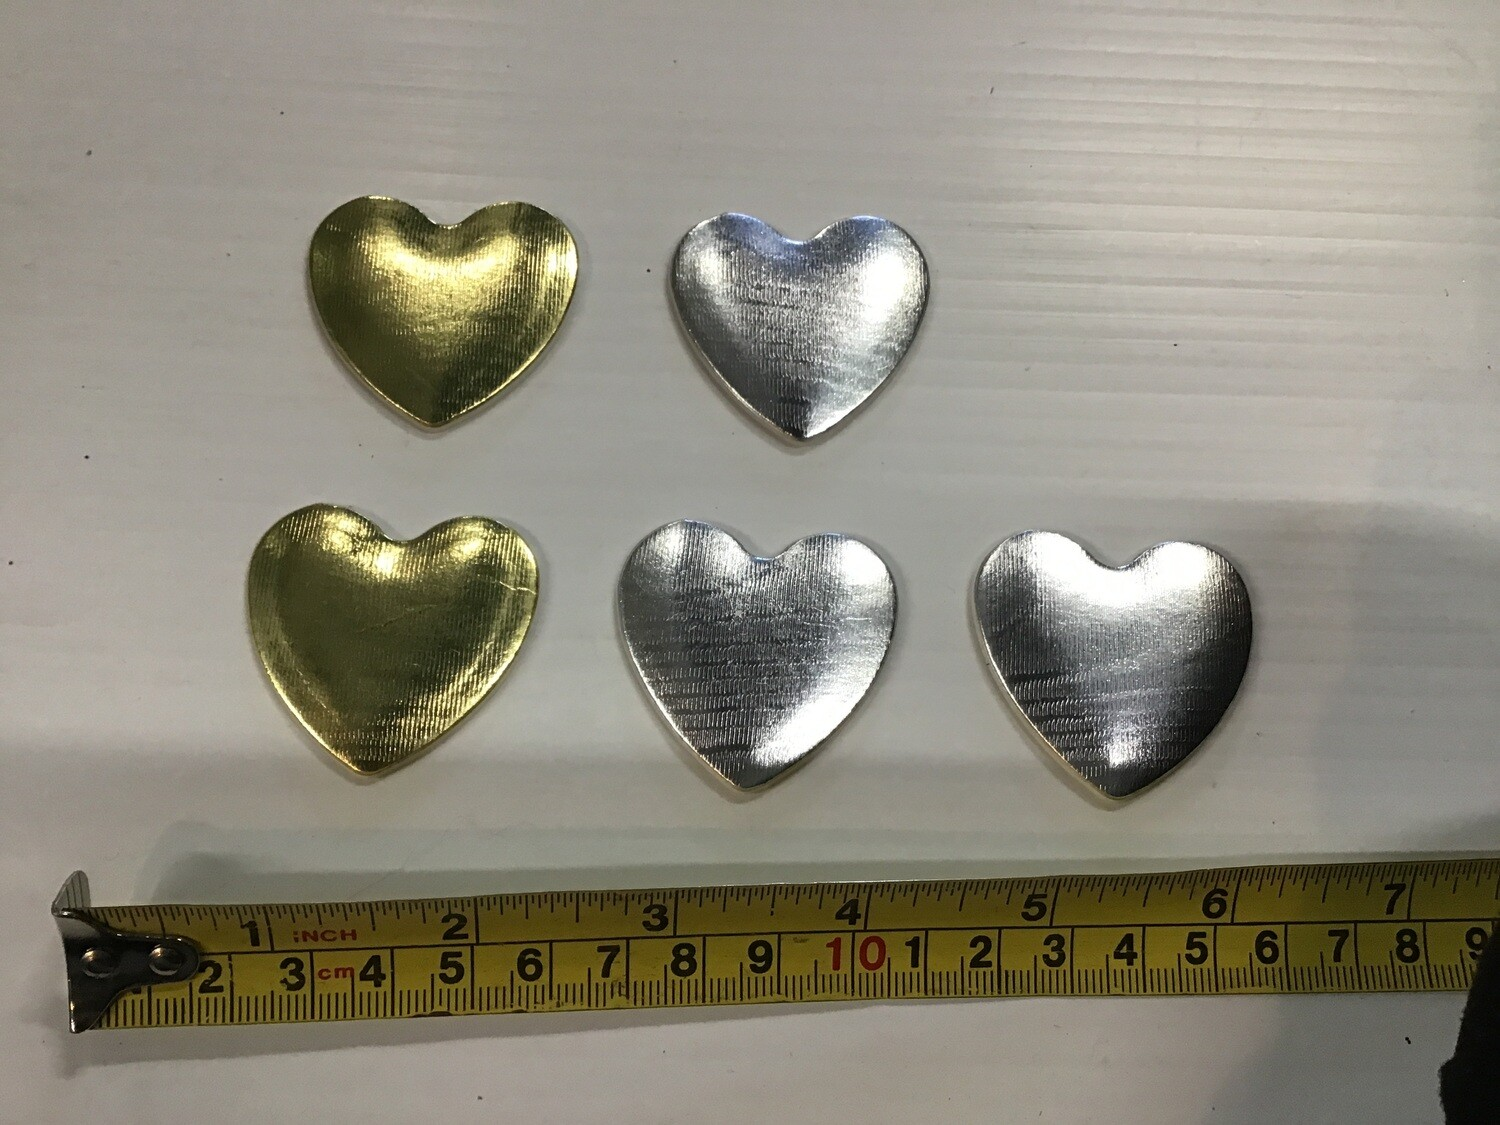 Heart Decorations: Silver&Gold, Set of 5